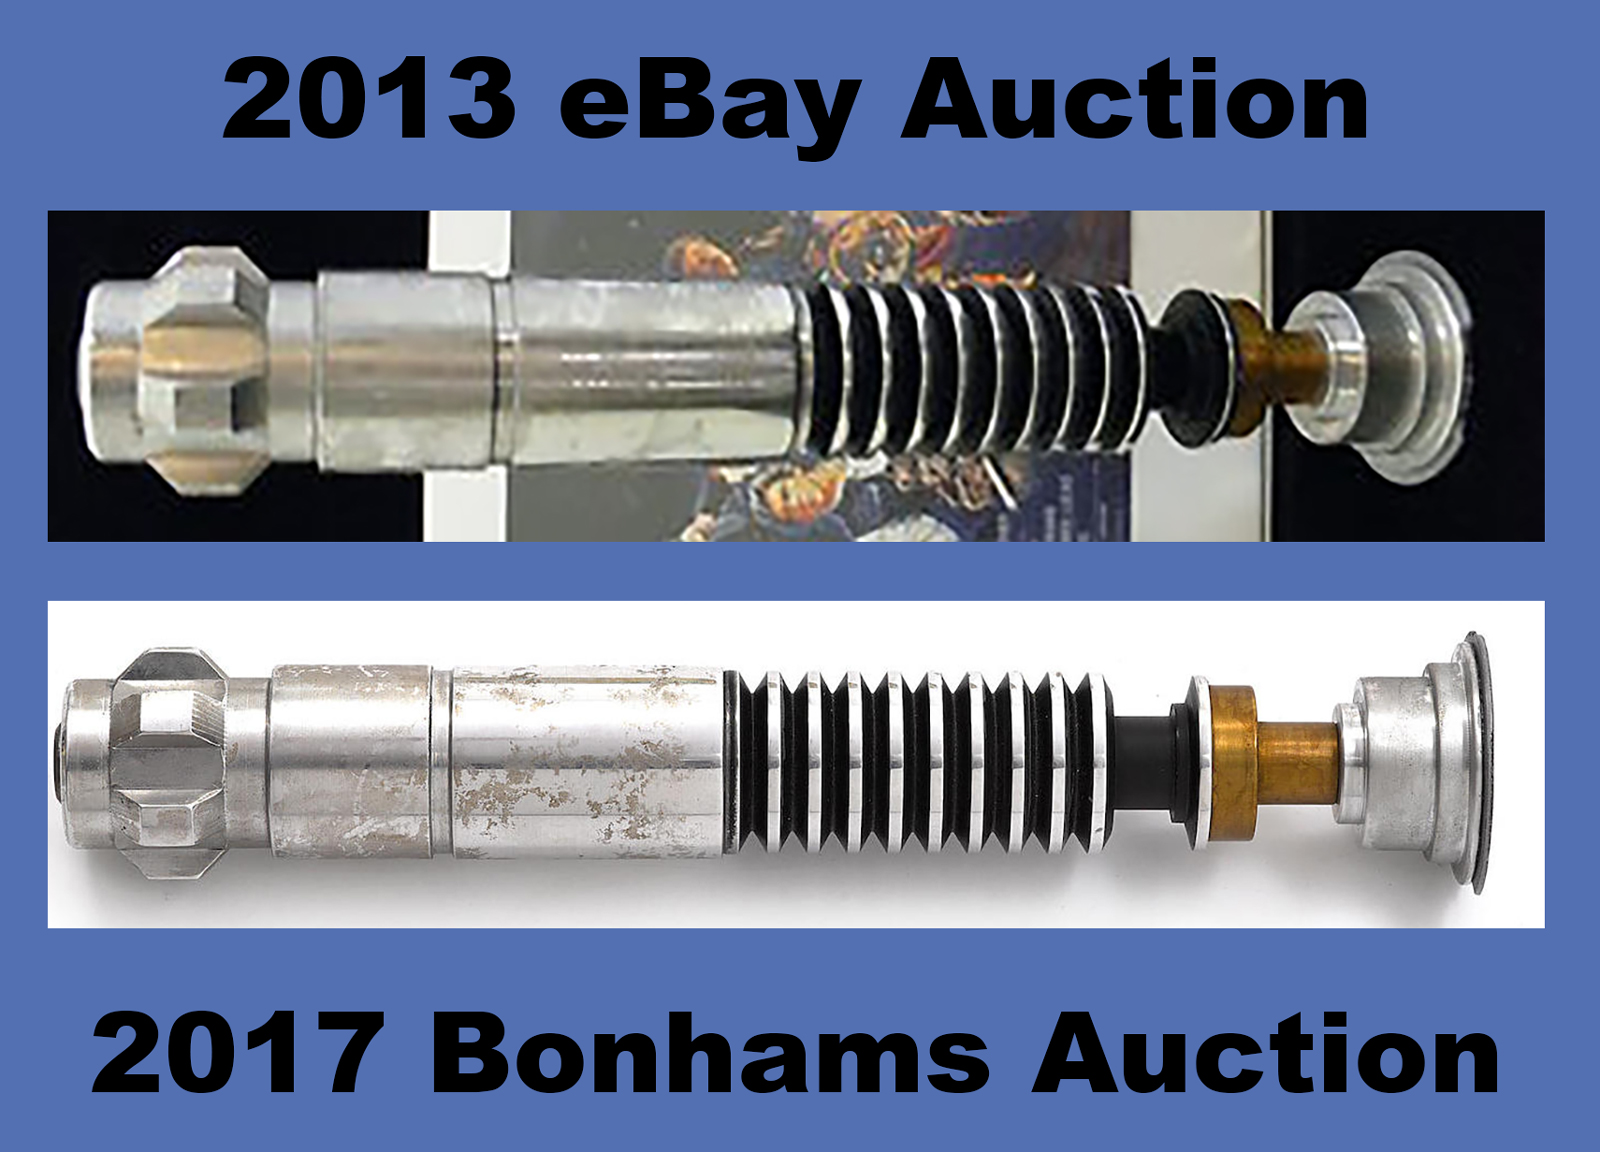 ... EBay Auction And The 2017 Bonhams Auction Include Two Polaroid  Photographs Showing A Disassembled Luke Skywalker U201cReturn Of The  Jediu201d Style Lightsaber ...